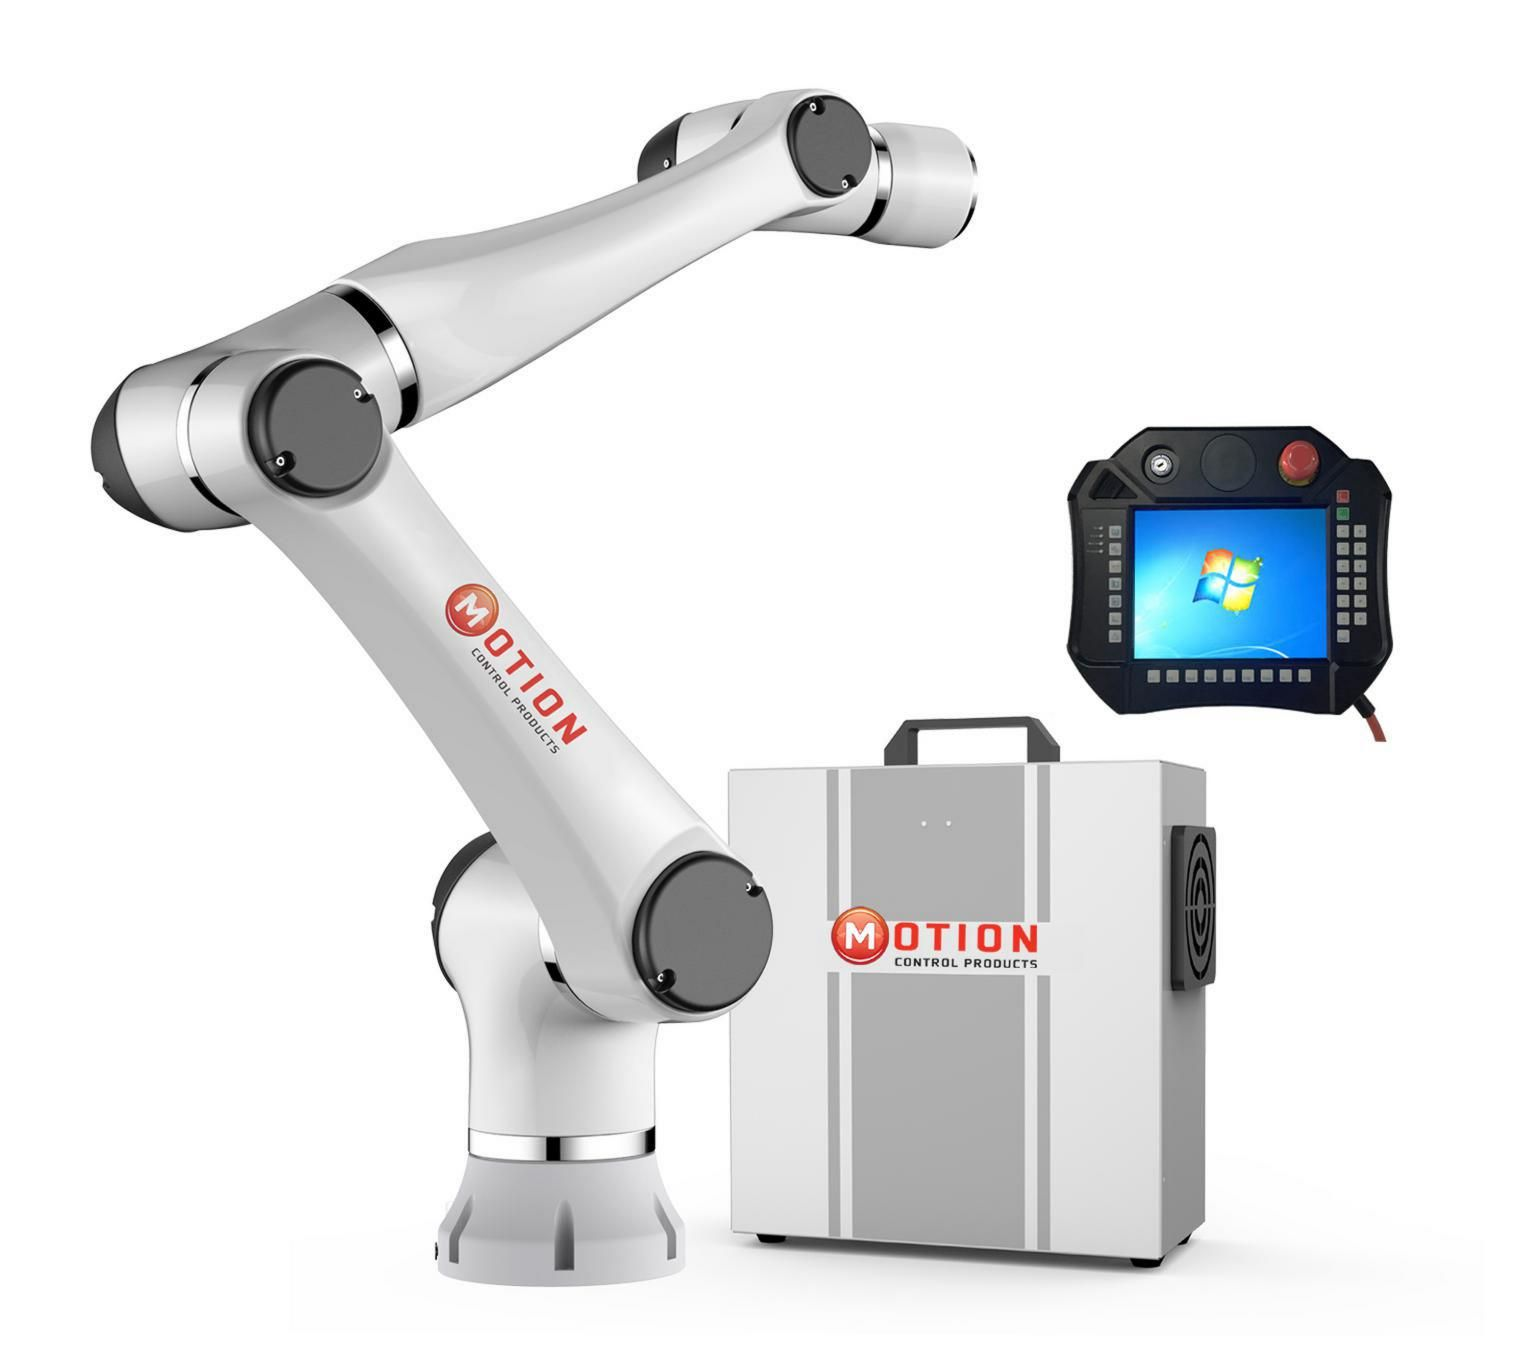 Elfin Collaborative Robots From Motion Control Products Ltd.